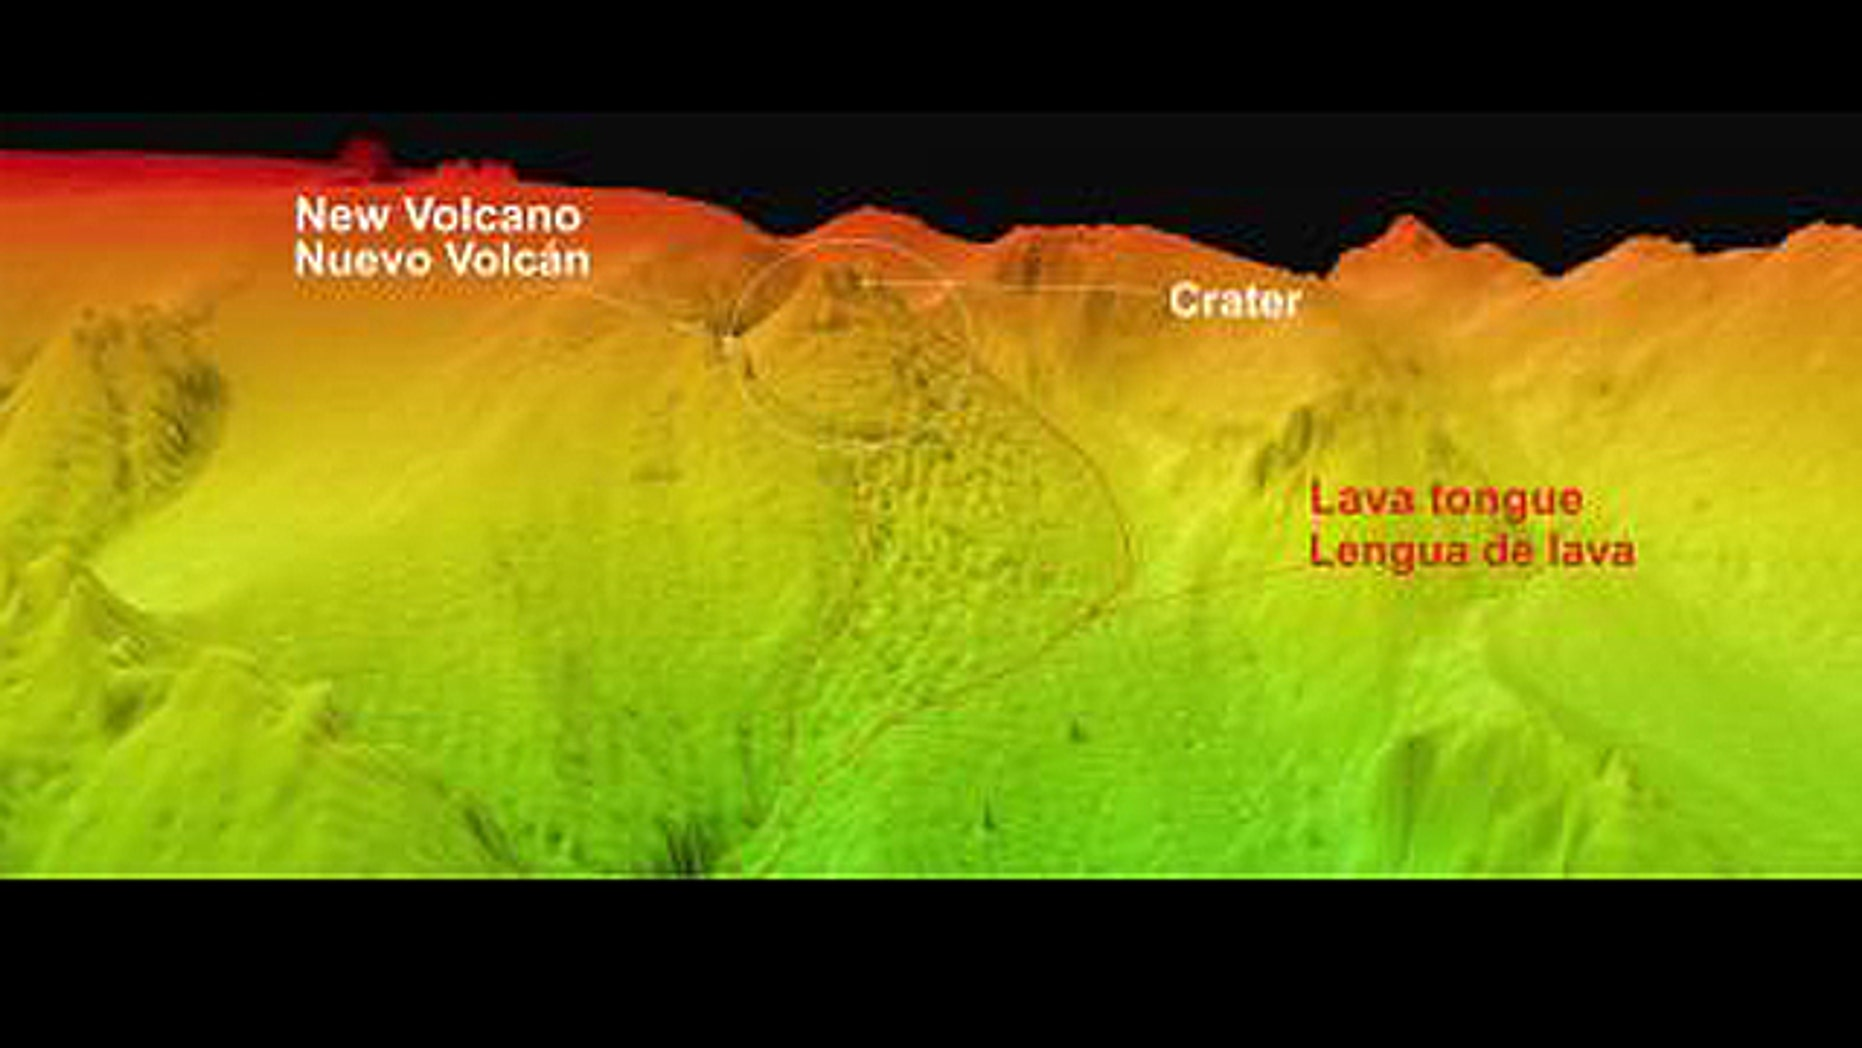 Caption: This image was recently taken and shows the new volcano and its lava tongue that descends in the path of the old underwater valley.